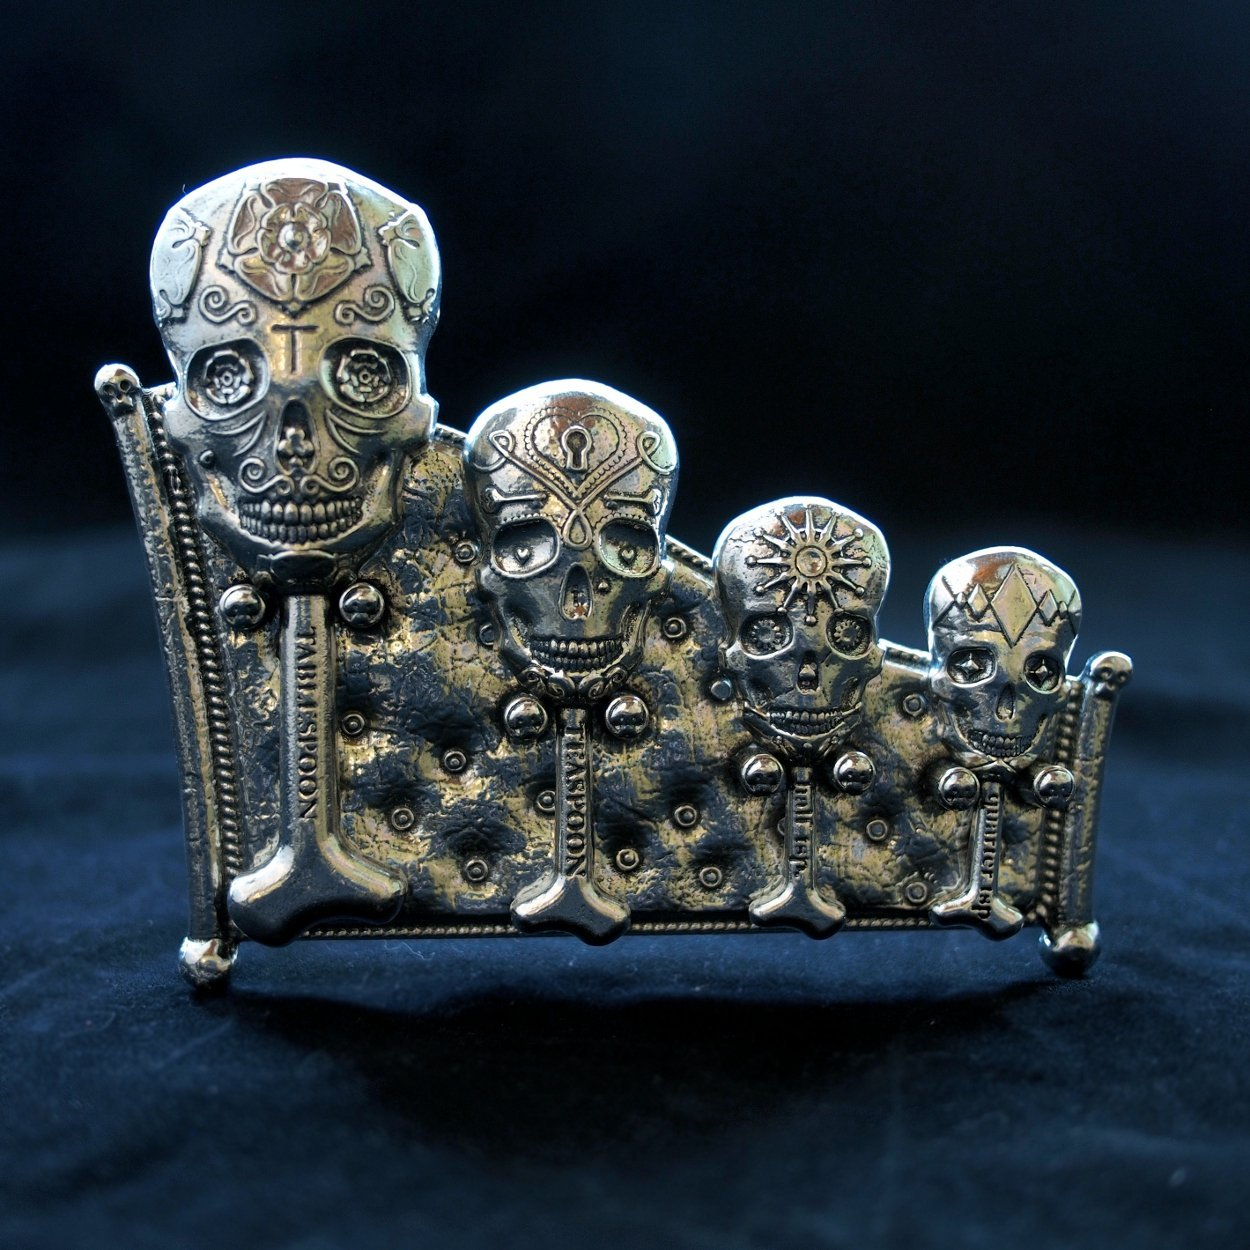 Calavera Measuring Spoons with Display Stand cast in Pewter by Roosfoos